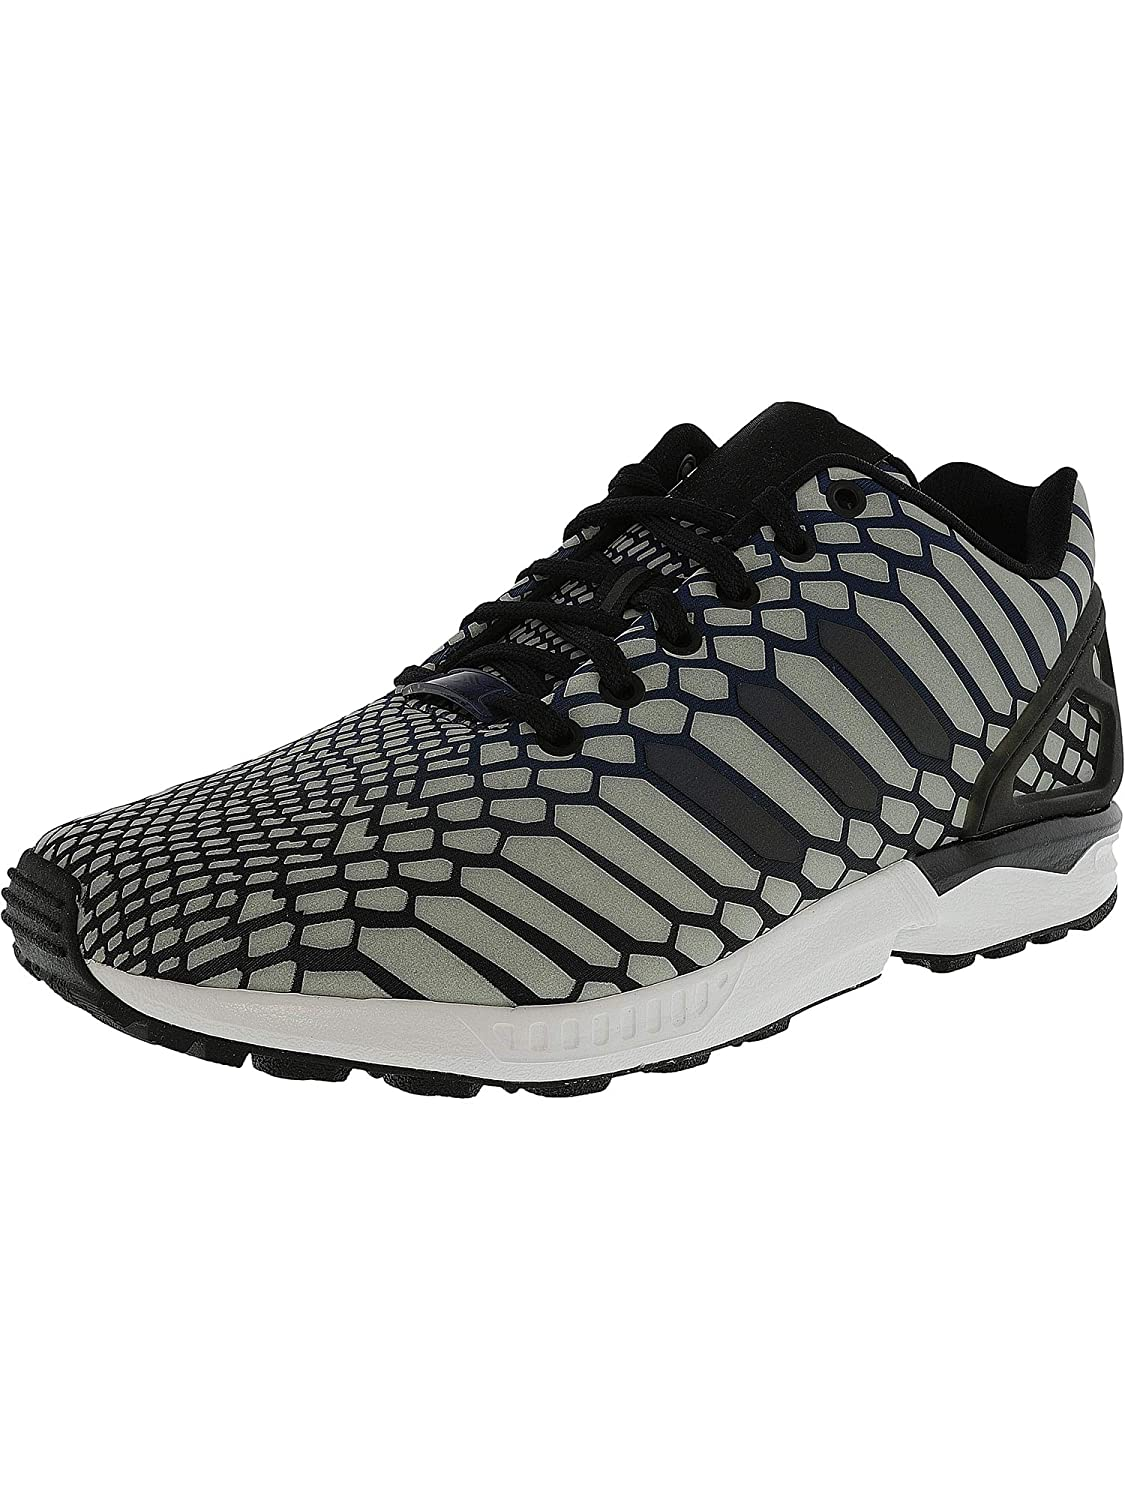 release date b5032 0b76a Adidas ZX FLUX mens fashion-sneakers AQ4534  Amazon.co.uk  Shoes   Bags